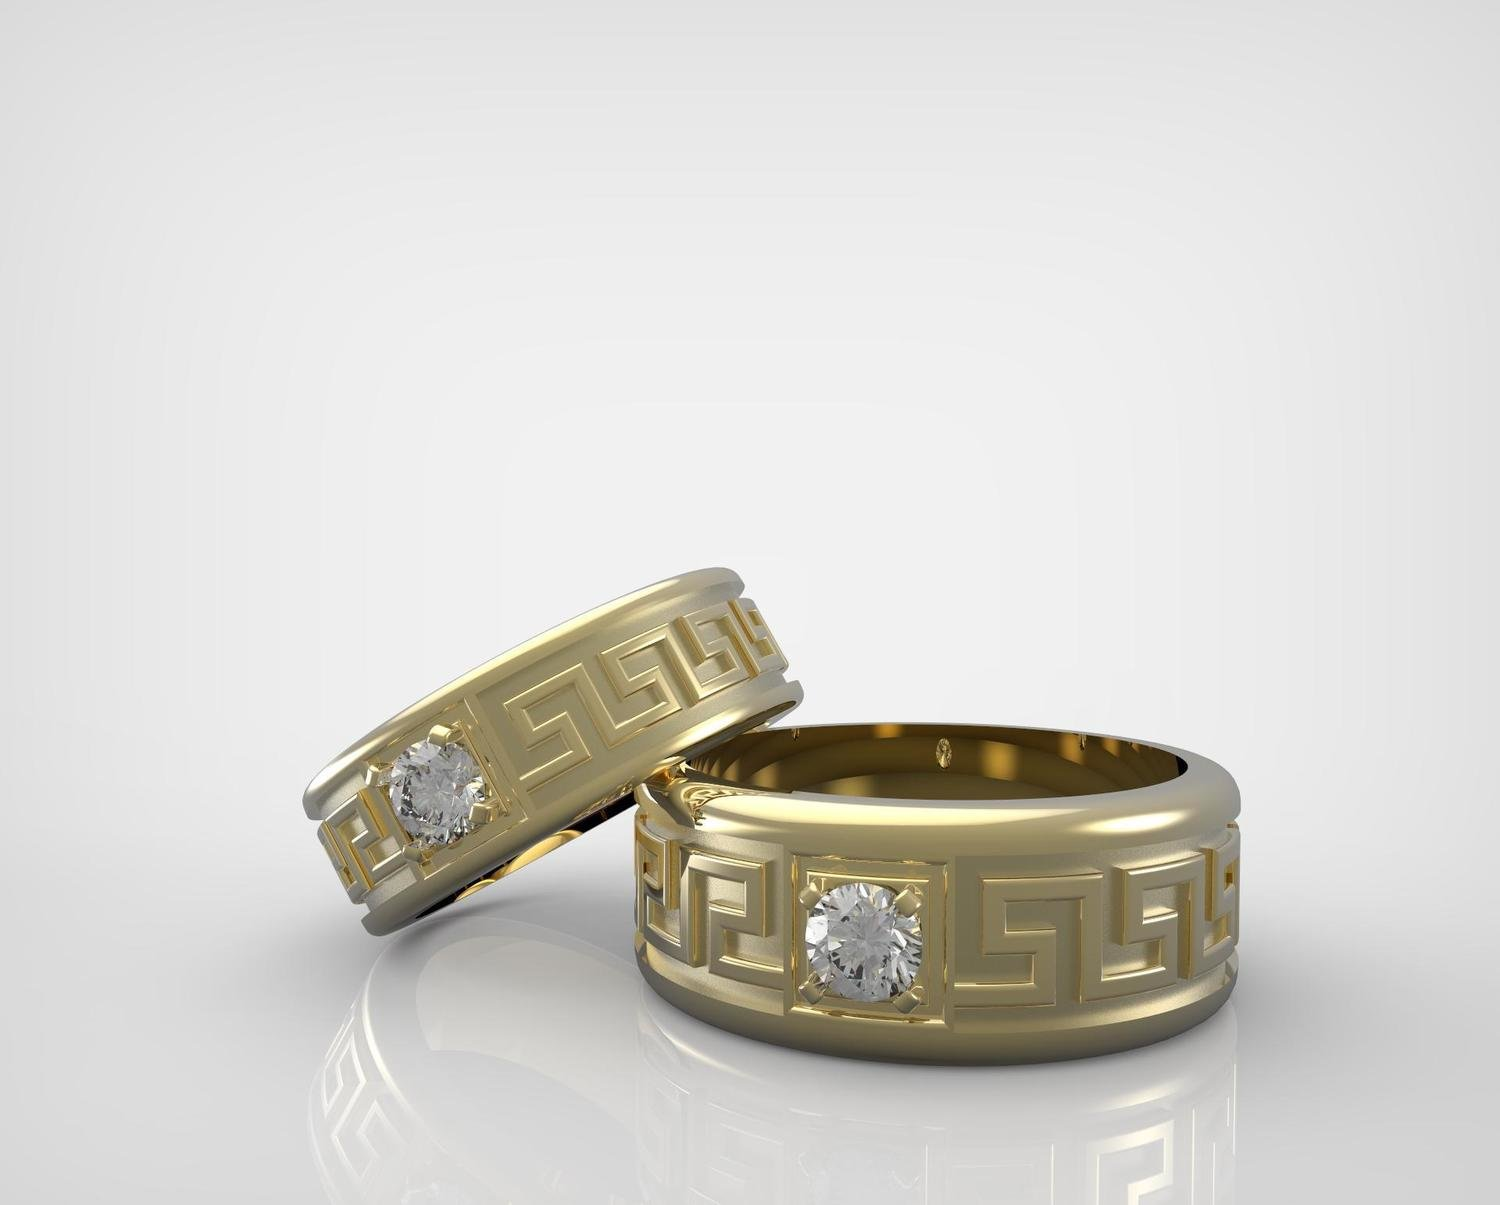 CAD/CAM of Gold and Diamond Wedding Ring